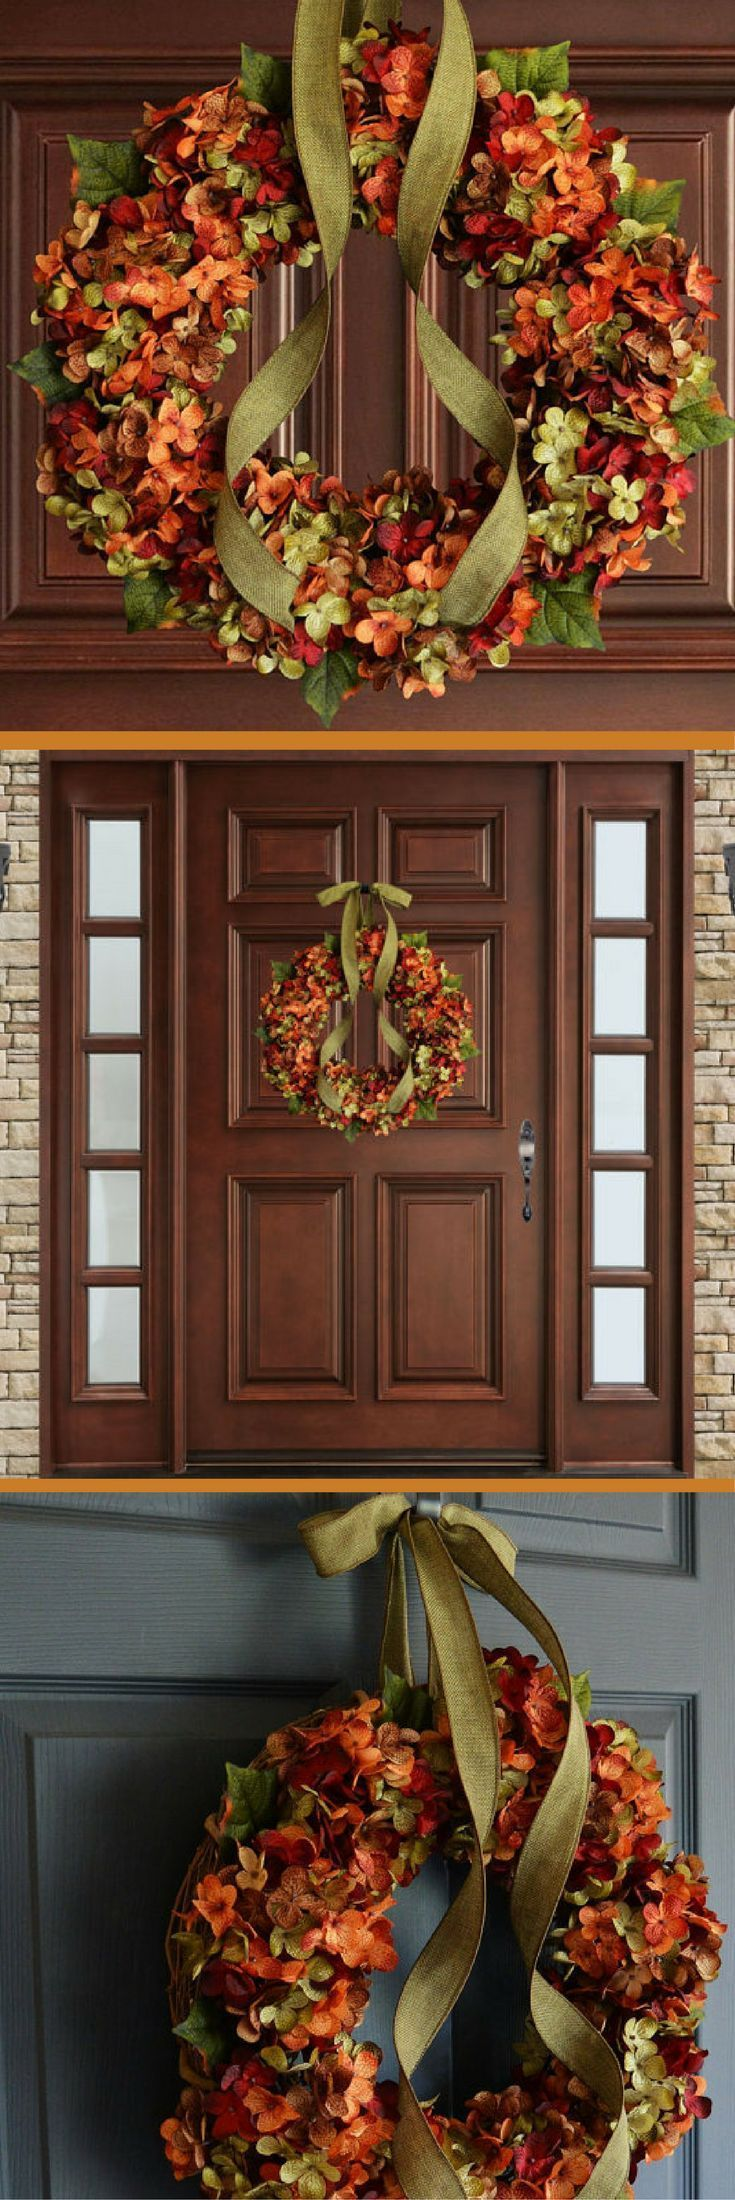 95 best Fall Wreaths for Front Door images on Pinterest | Fall ...